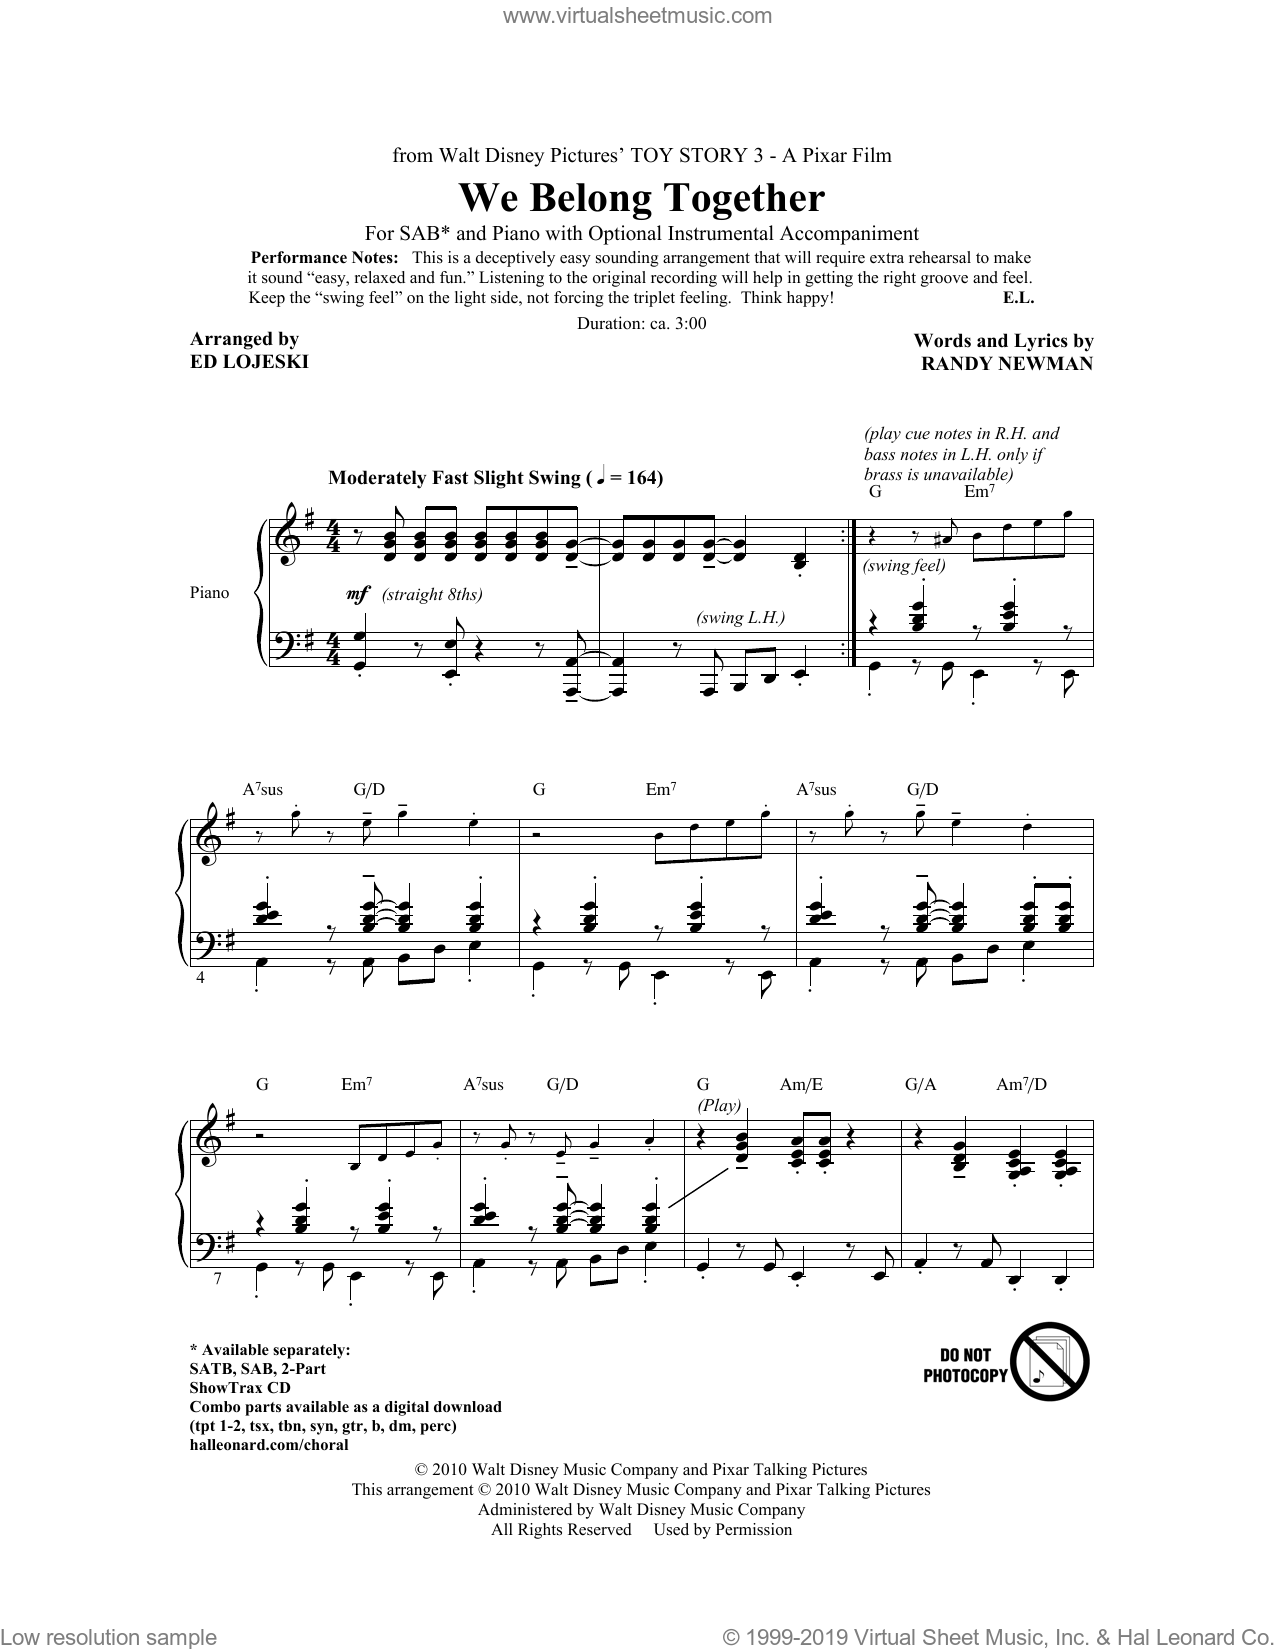 We Belong Together (from Toy Story 3) (arr. Ed Lojeski) sheet music for choir (SAB: soprano, alto, bass) by Randy Newman and Ed Lojeski, intermediate skill level